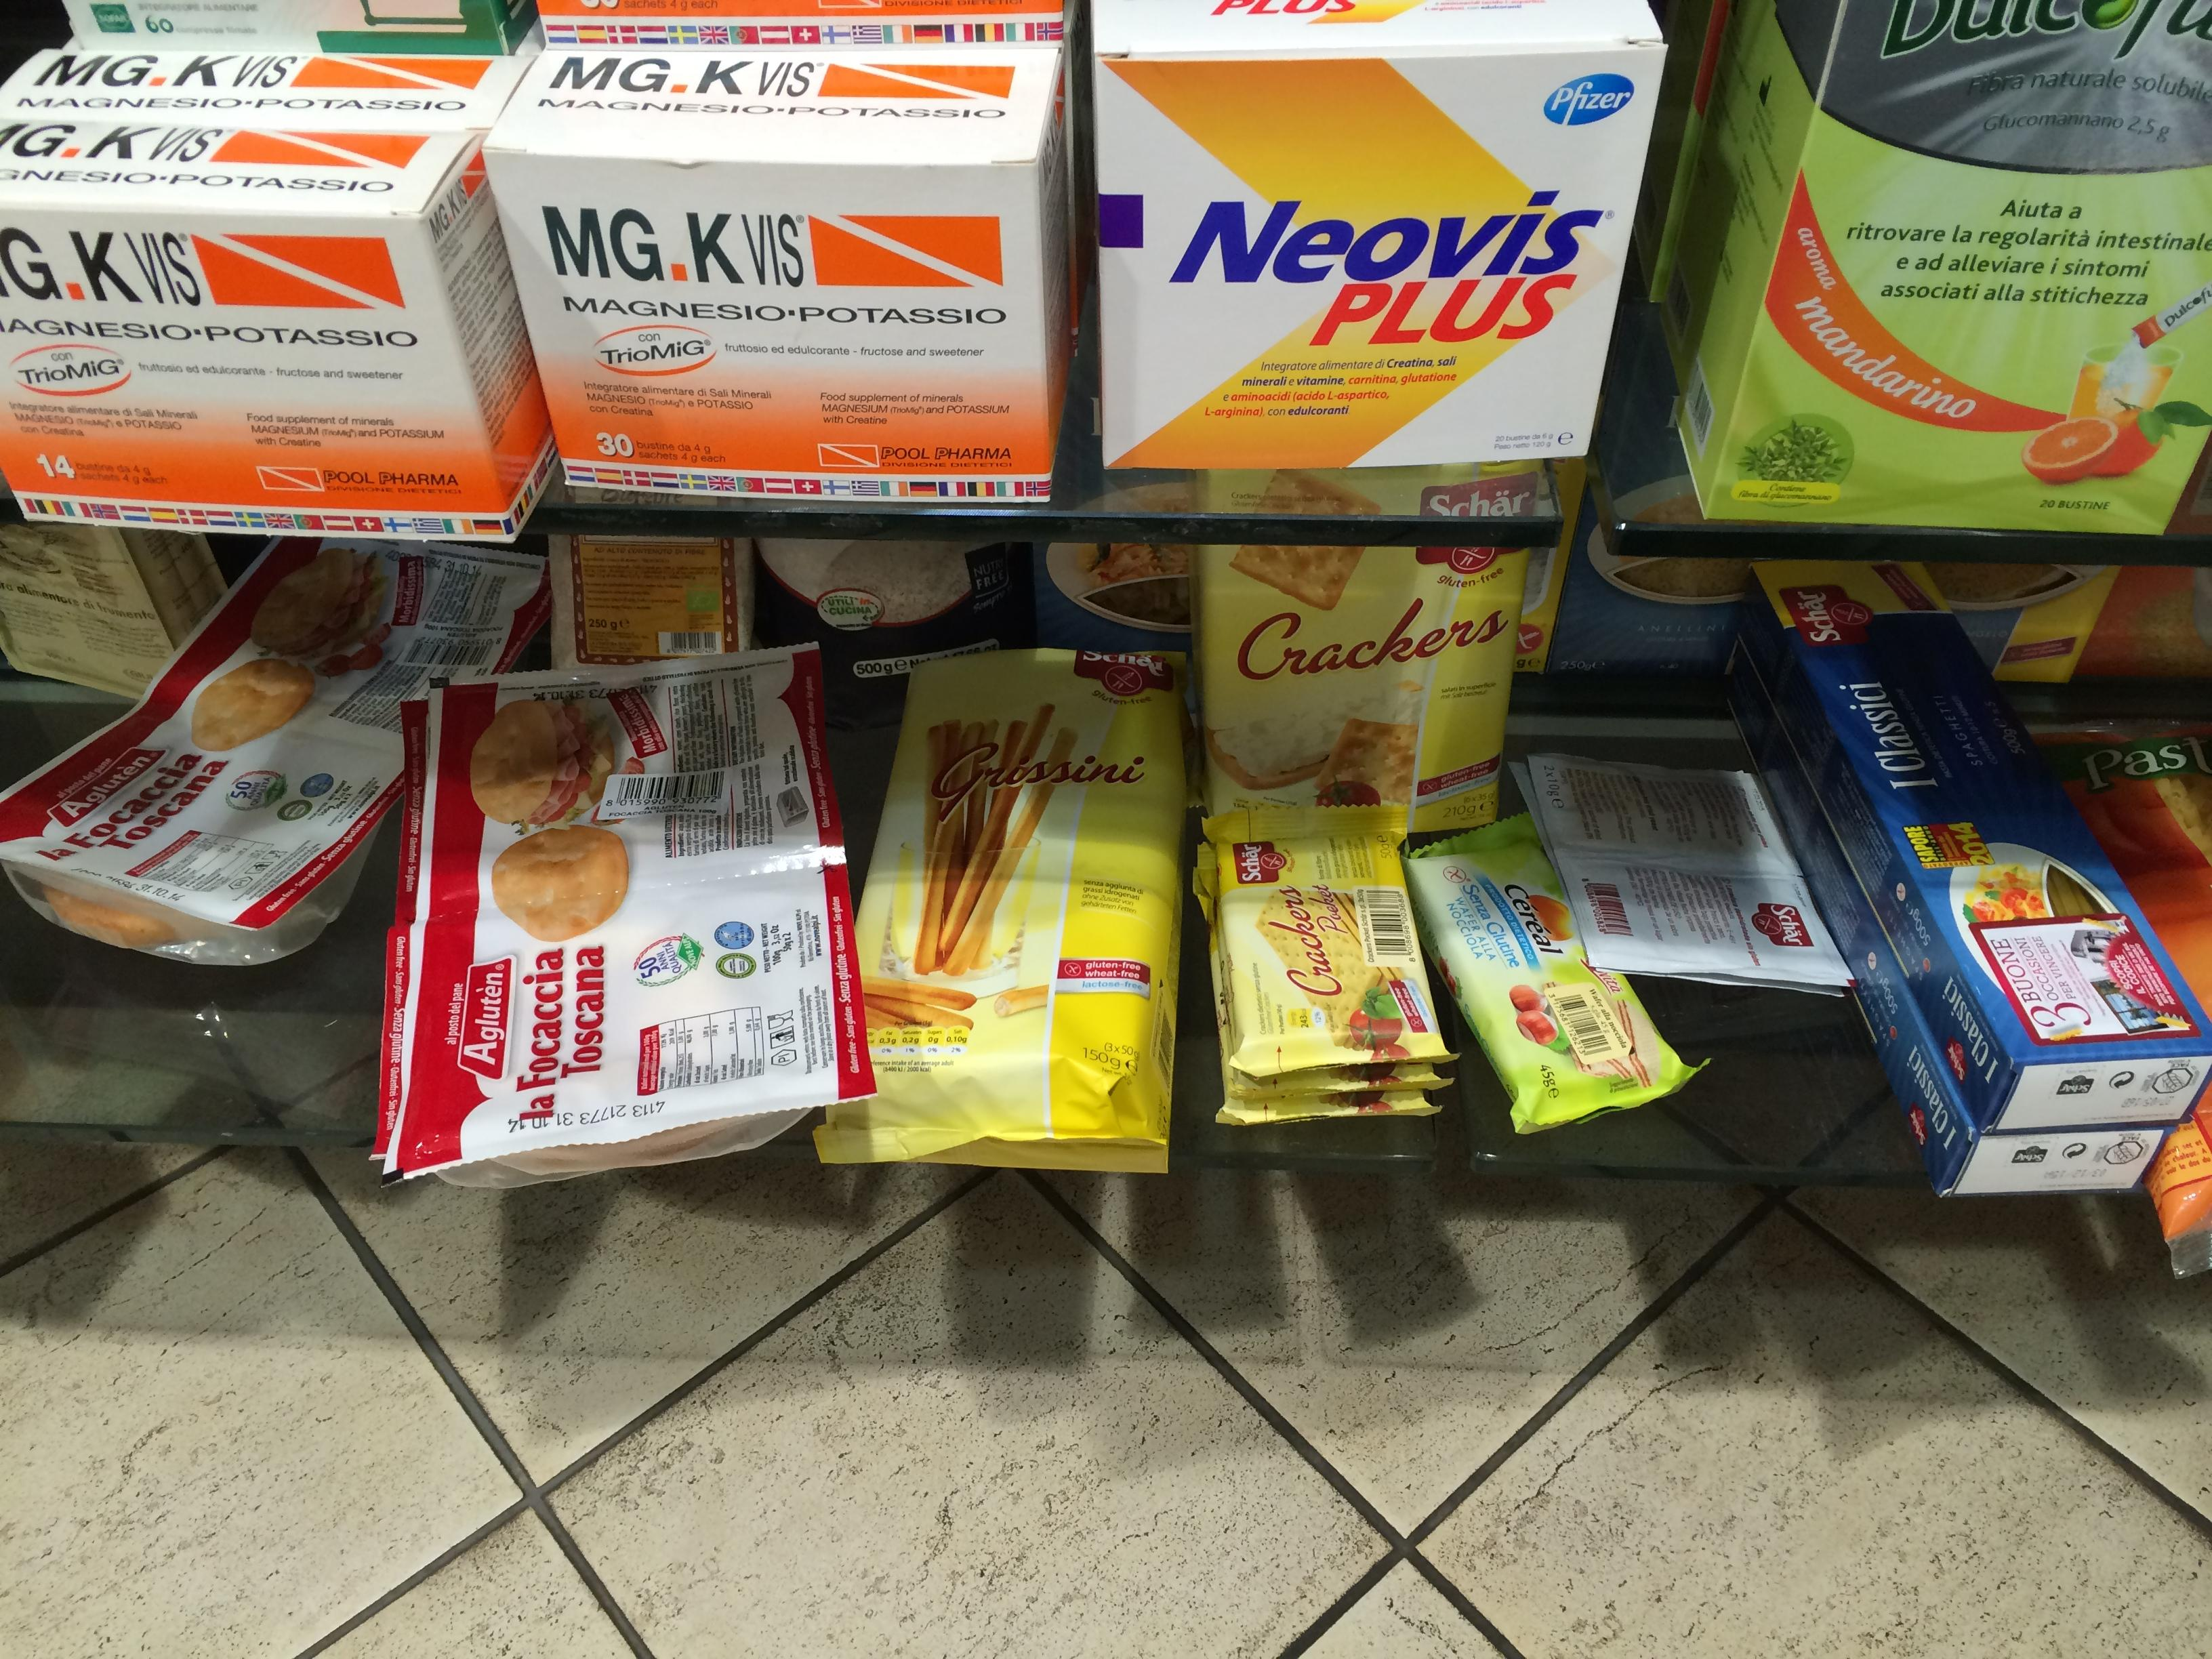 Gluten-free food in a Rome pharmacy